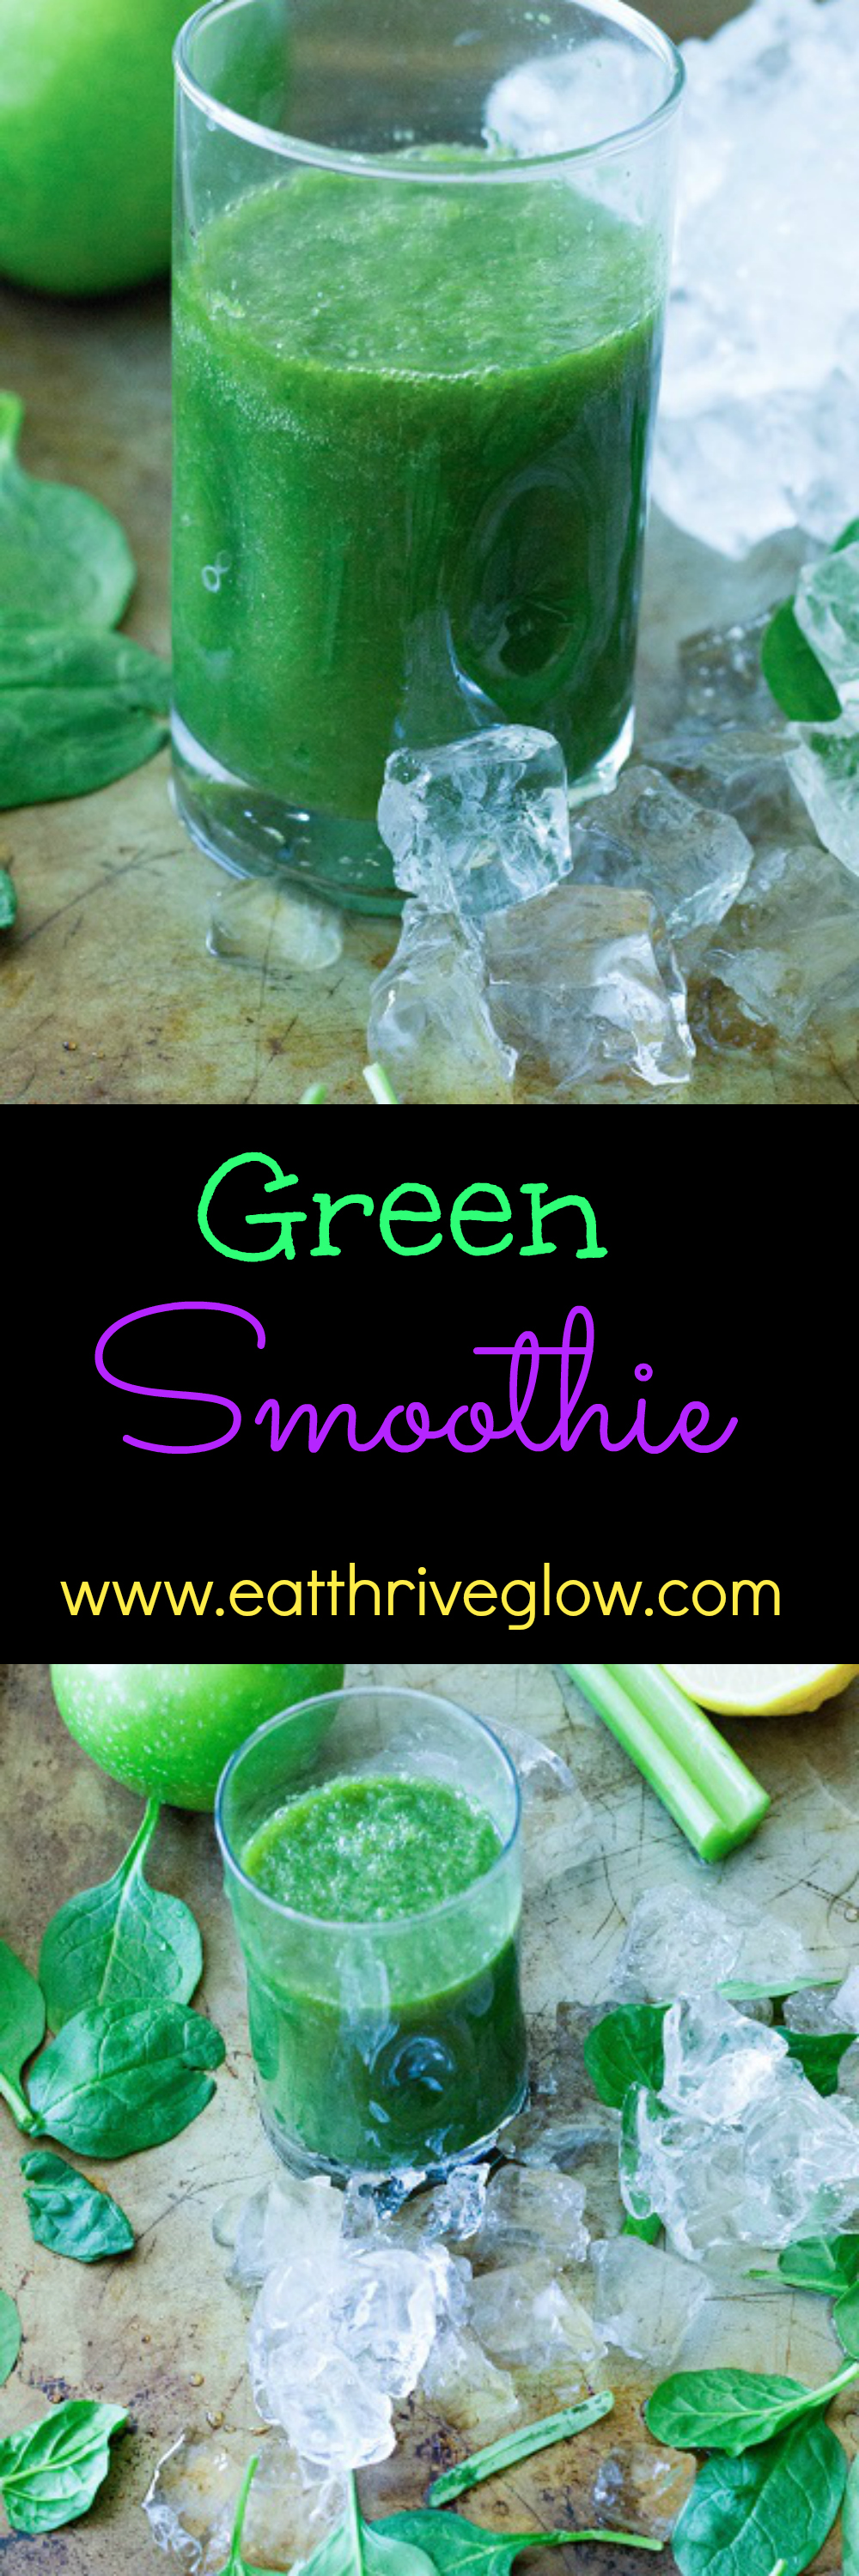 Green Smoothie - Eat Thrive Glow